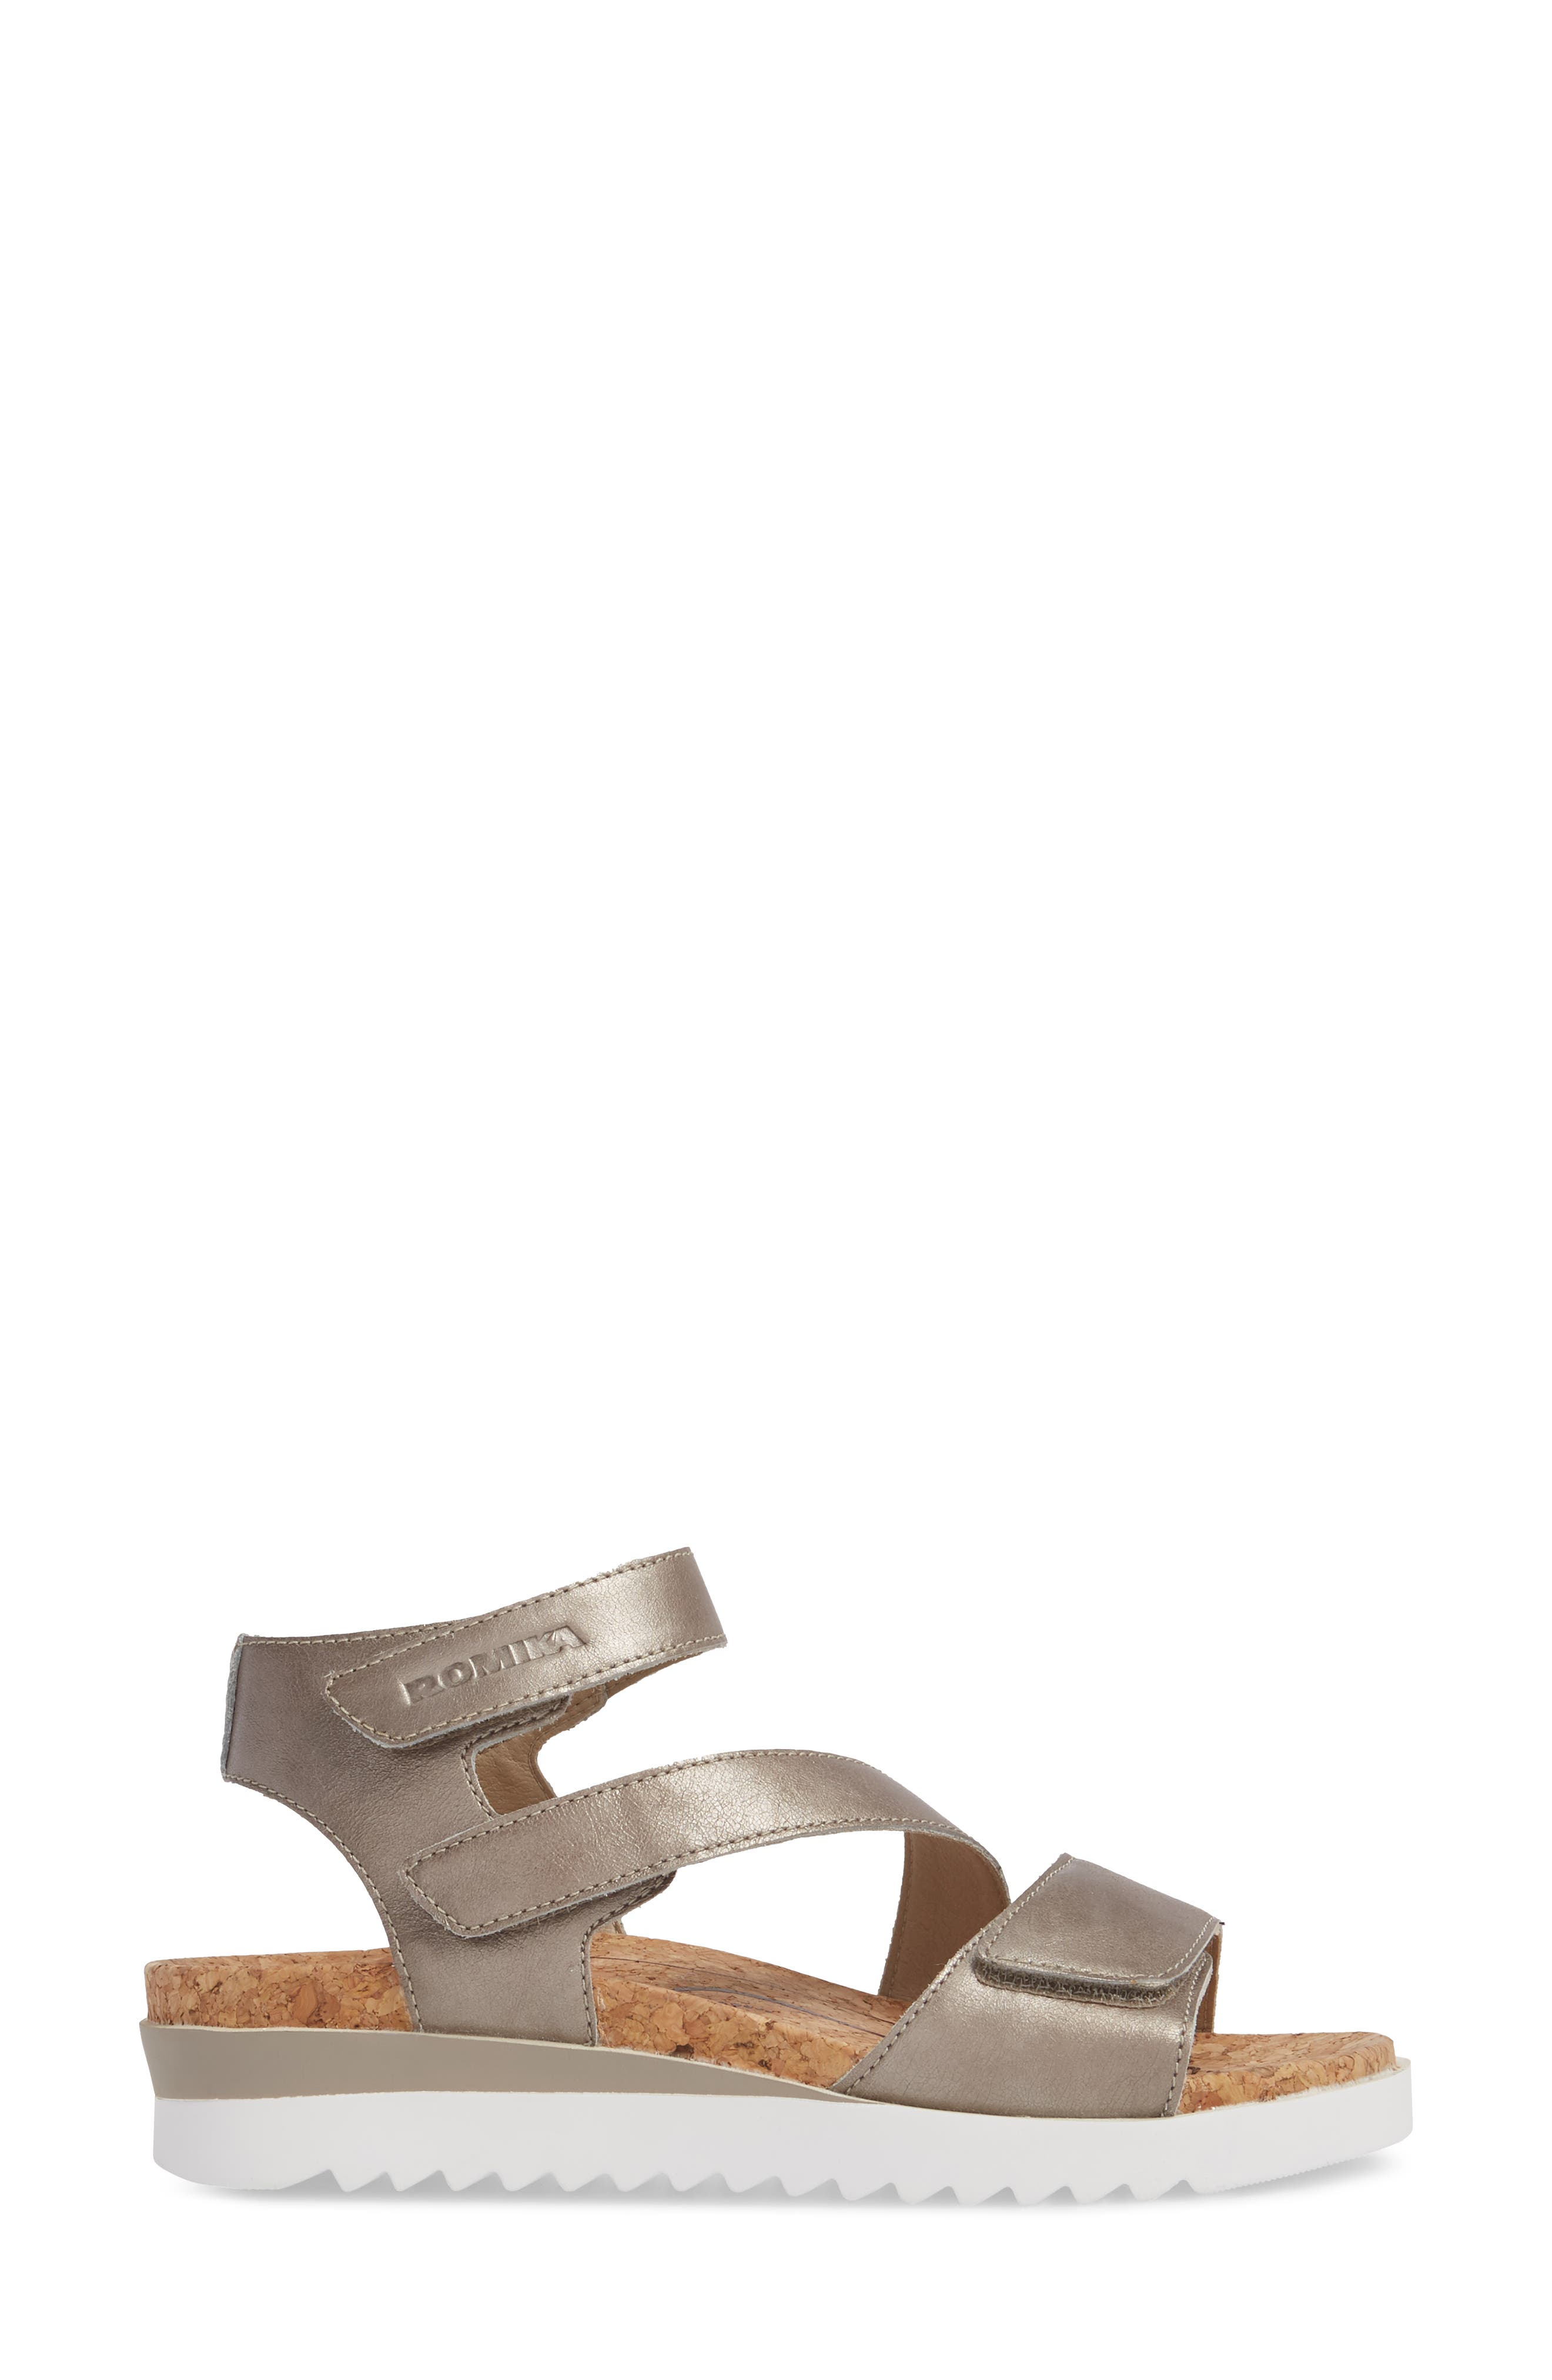 ROMIKA<SUP>®</SUP>, Hollywood 04 Sandal, Alternate thumbnail 3, color, PLATINUM LEATHER